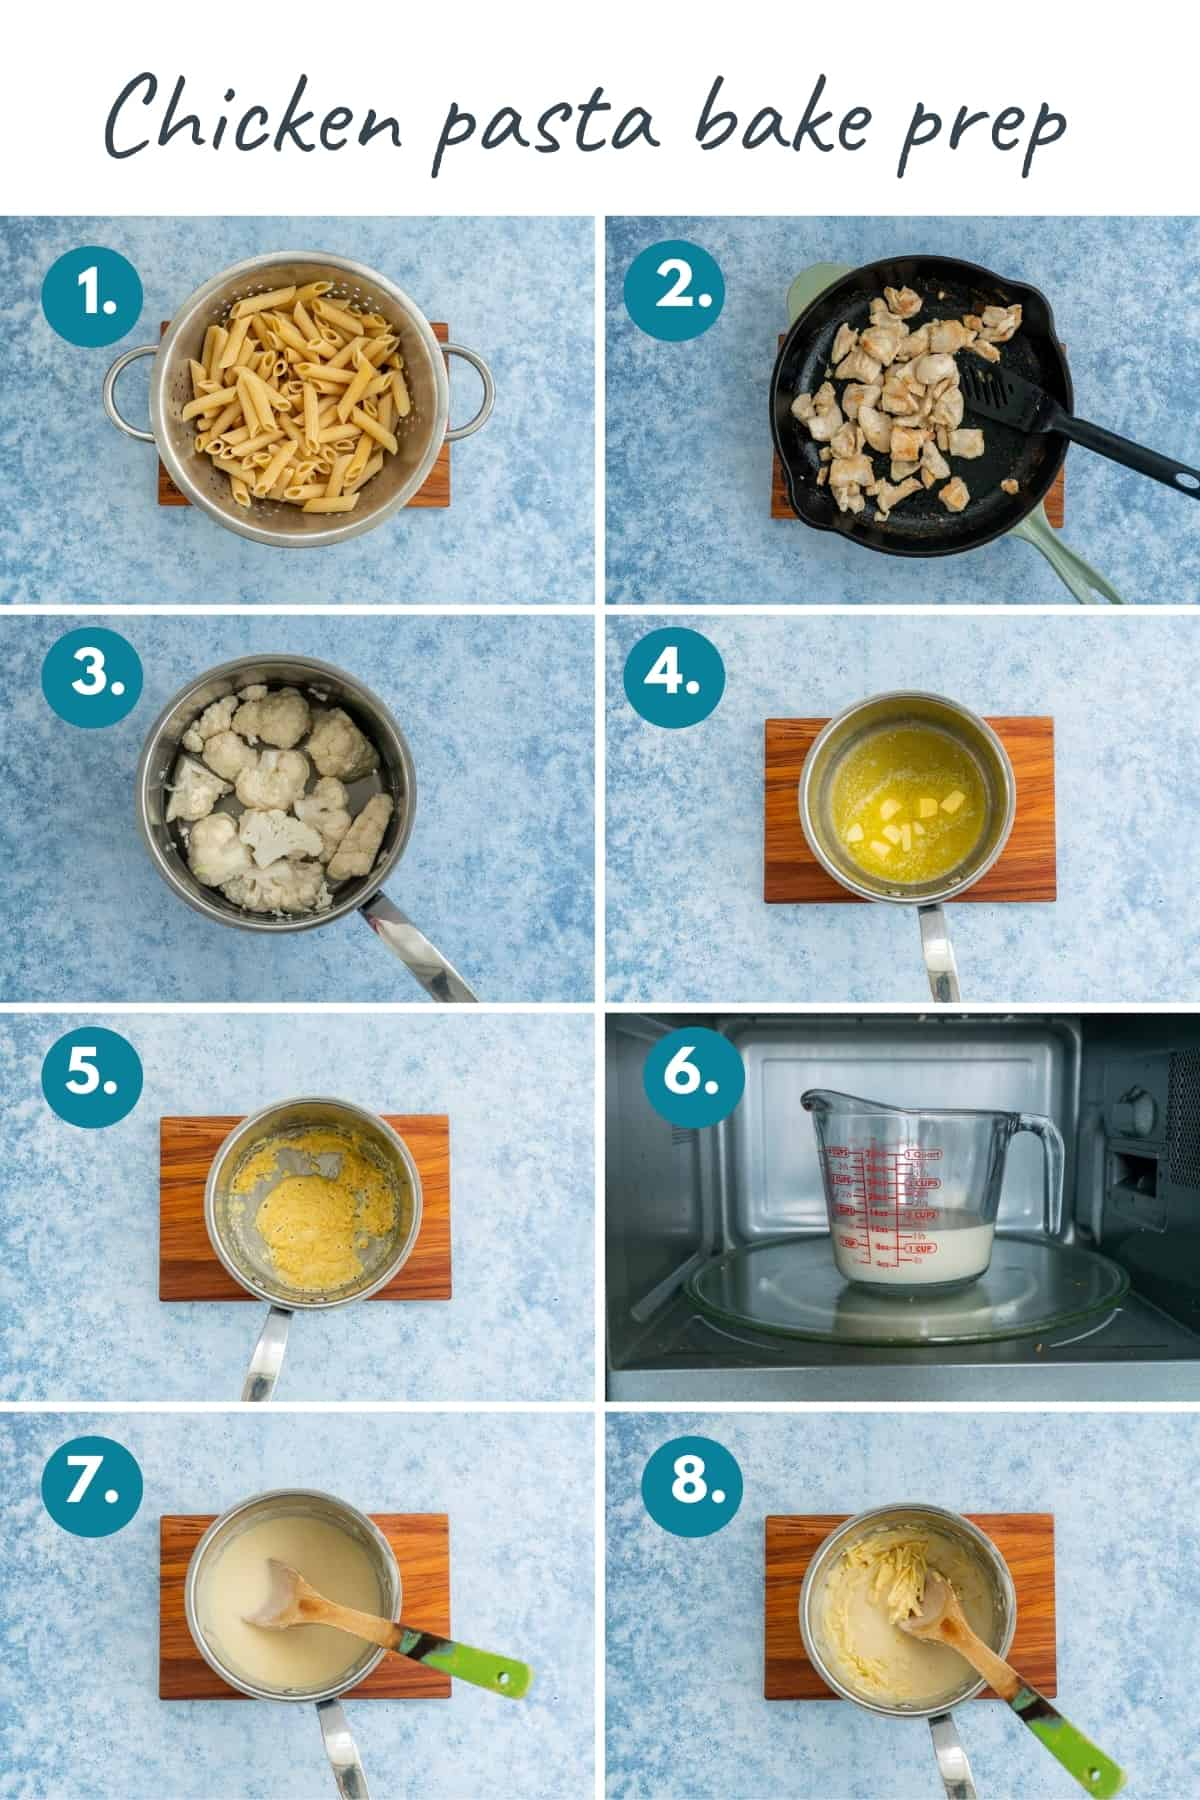 8 photo collage with text overlay showing the preparation required to make chicken pasta bake.